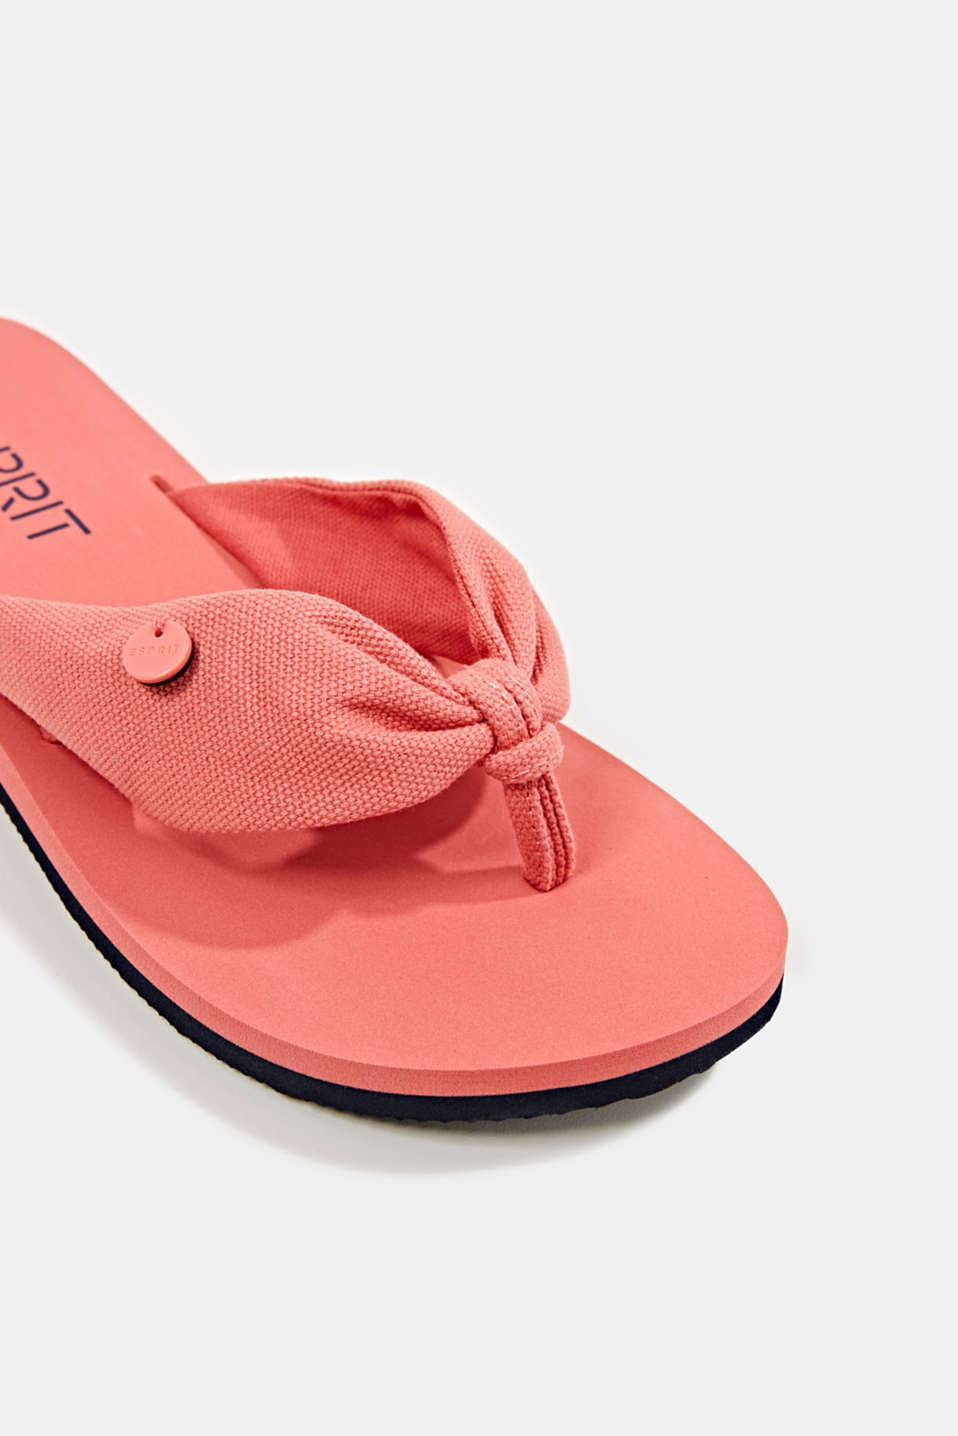 Thong sandals with floral print, CORAL, detail image number 3